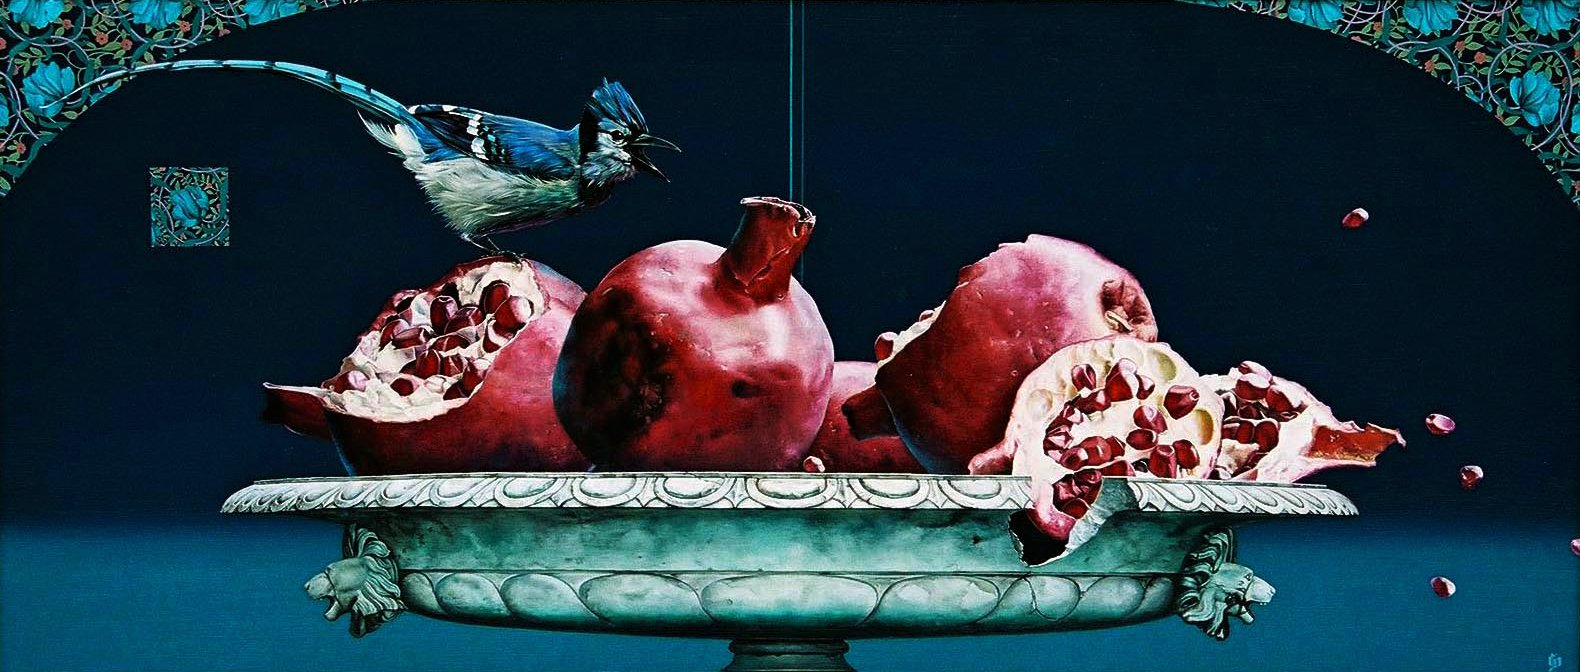 Slava Fokk Still life with Pomegranate